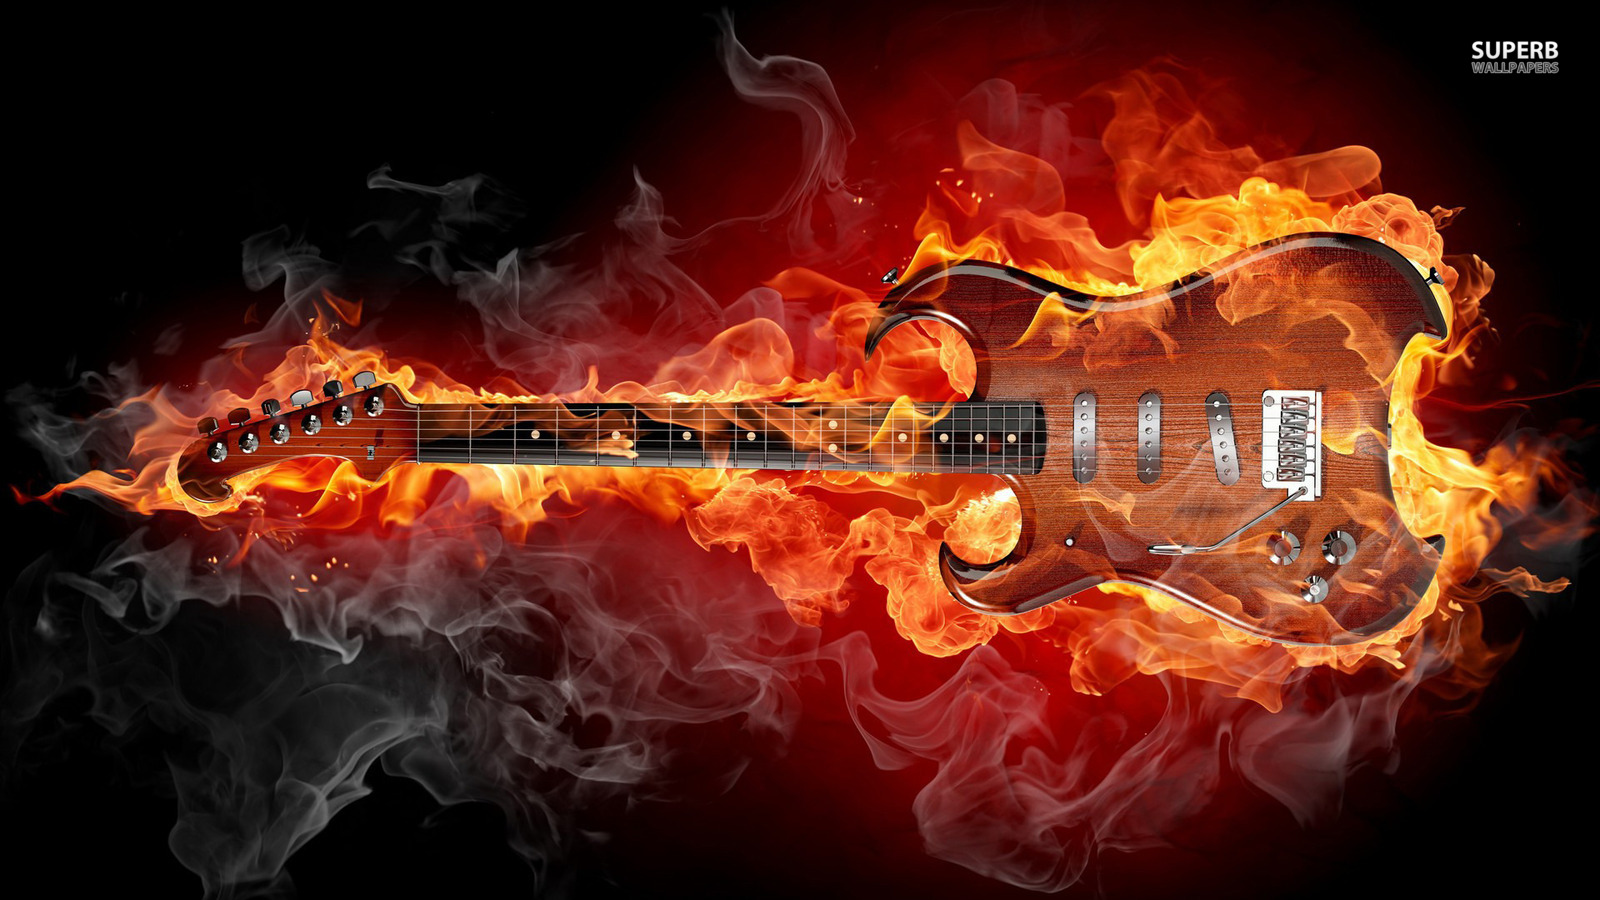 Flaming Bass Guitar Stock Photo - Download Image Now - iStock